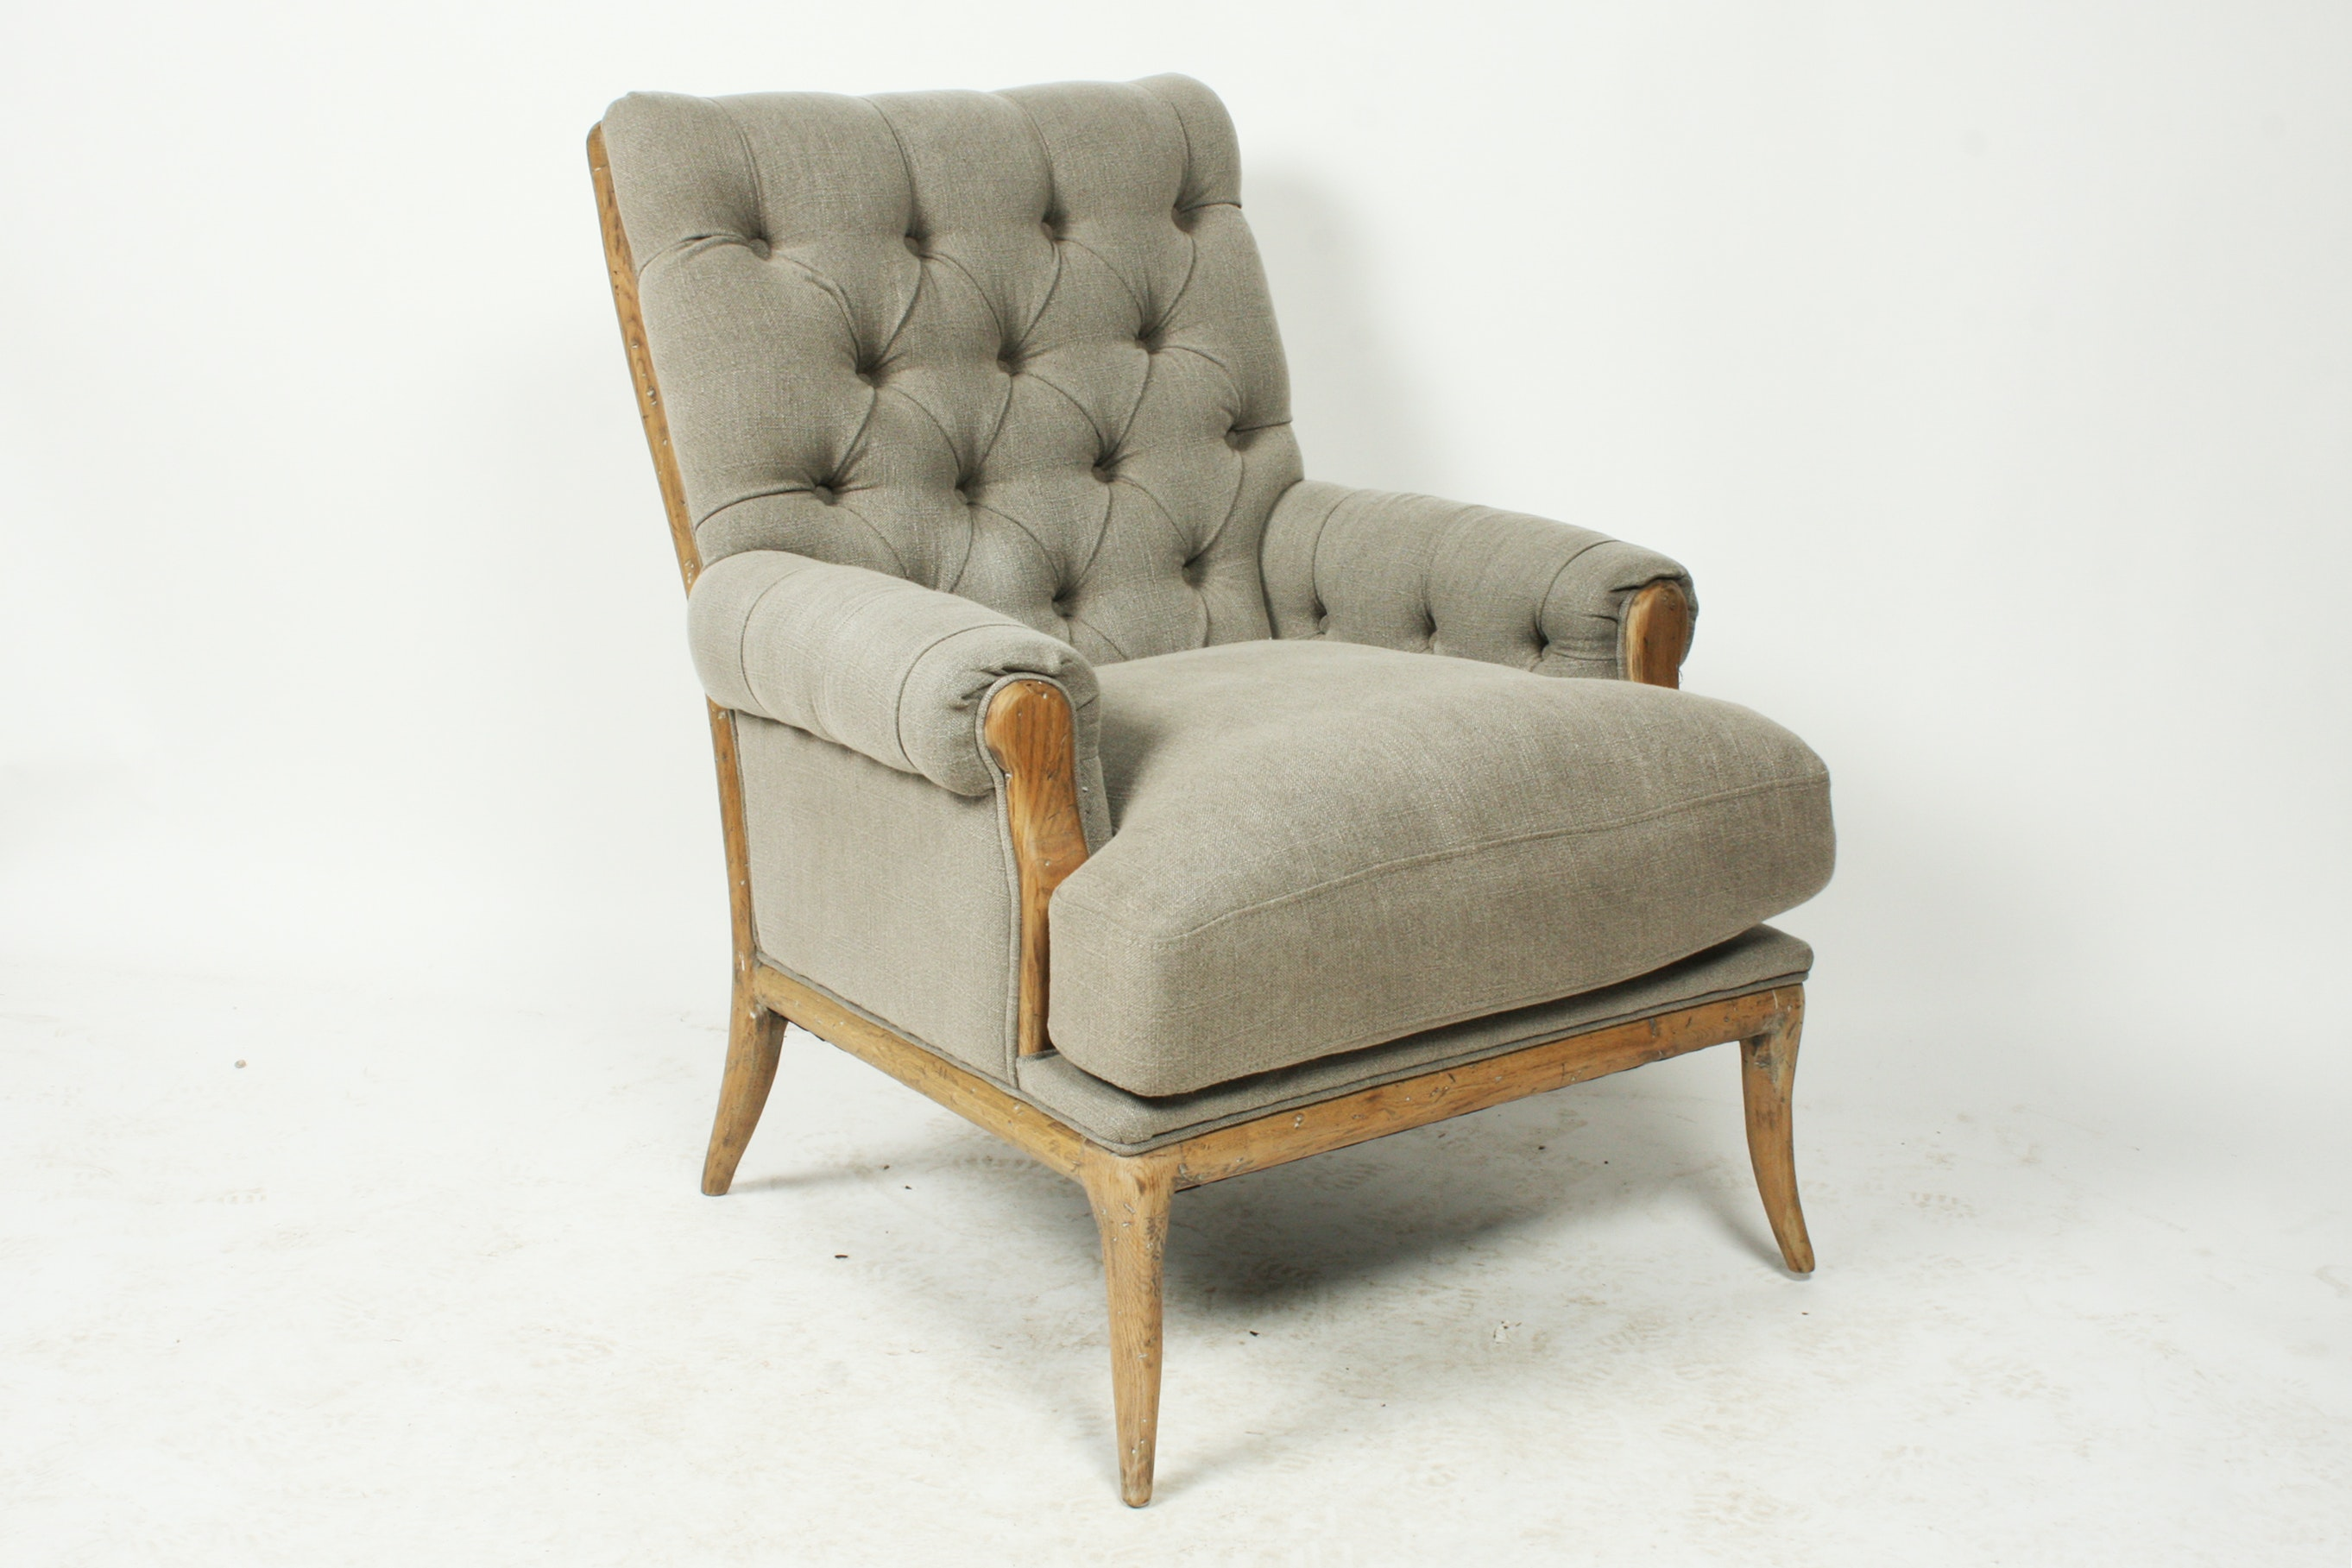 upholstered armchair by blink home